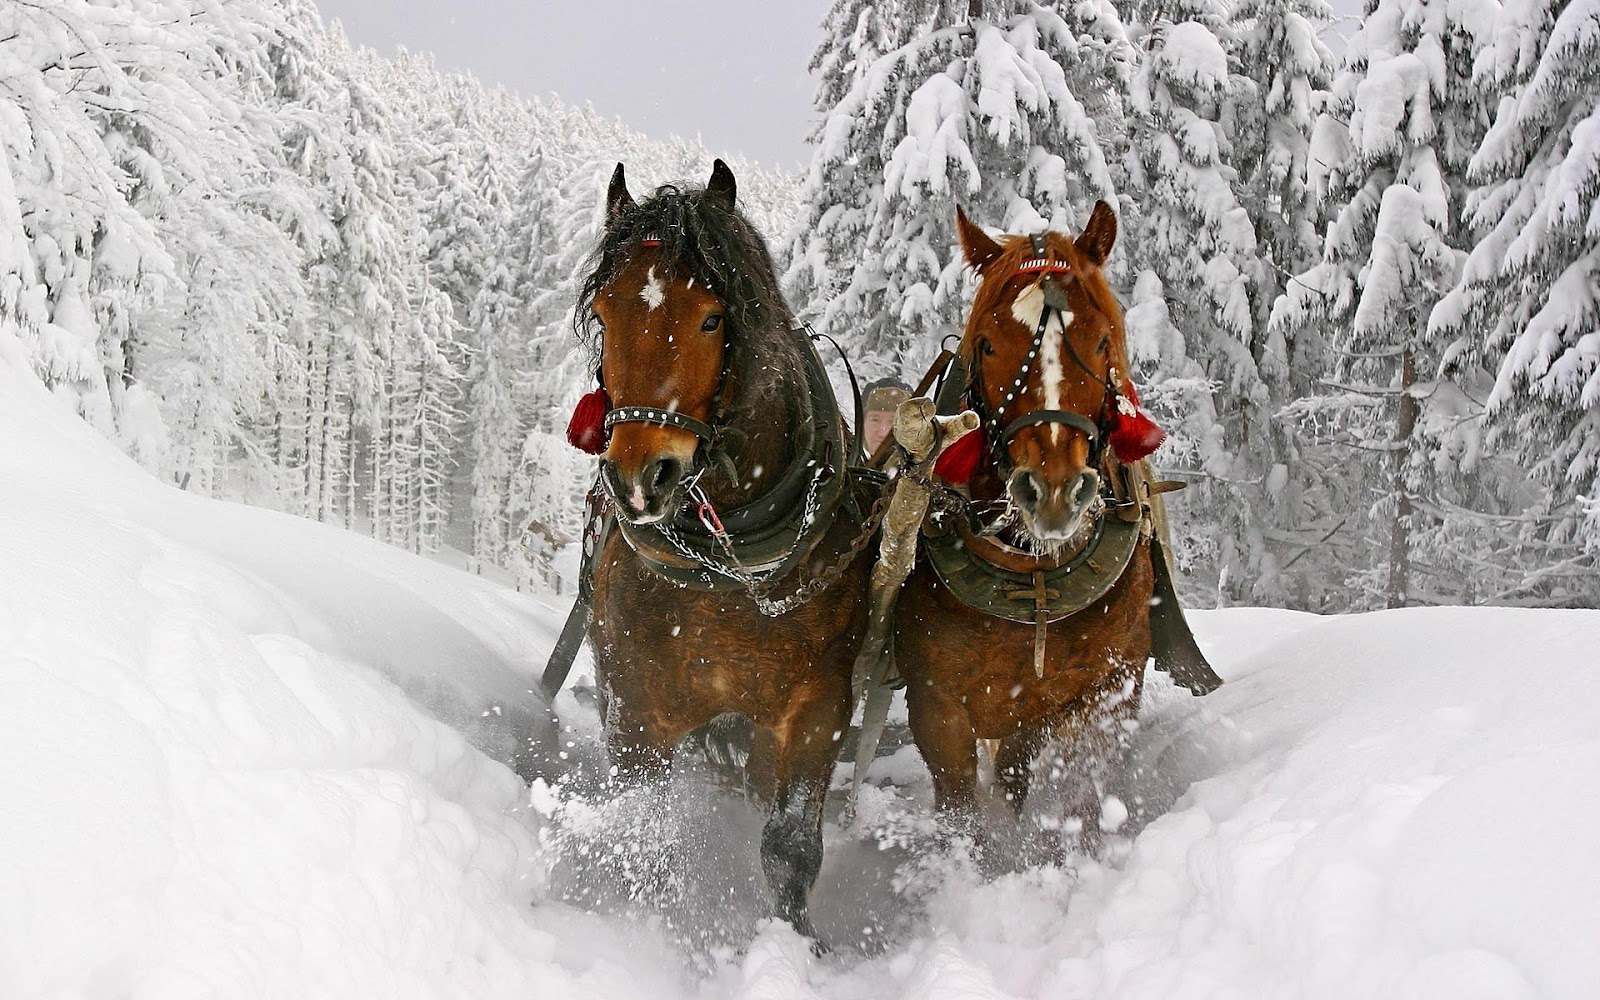 Simple   Wallpaper Horse Winter - animal-wallpapers-two-brown-horses-running-through-the-snow-hd-horse-wallpaper  Pictures_93628.jpg